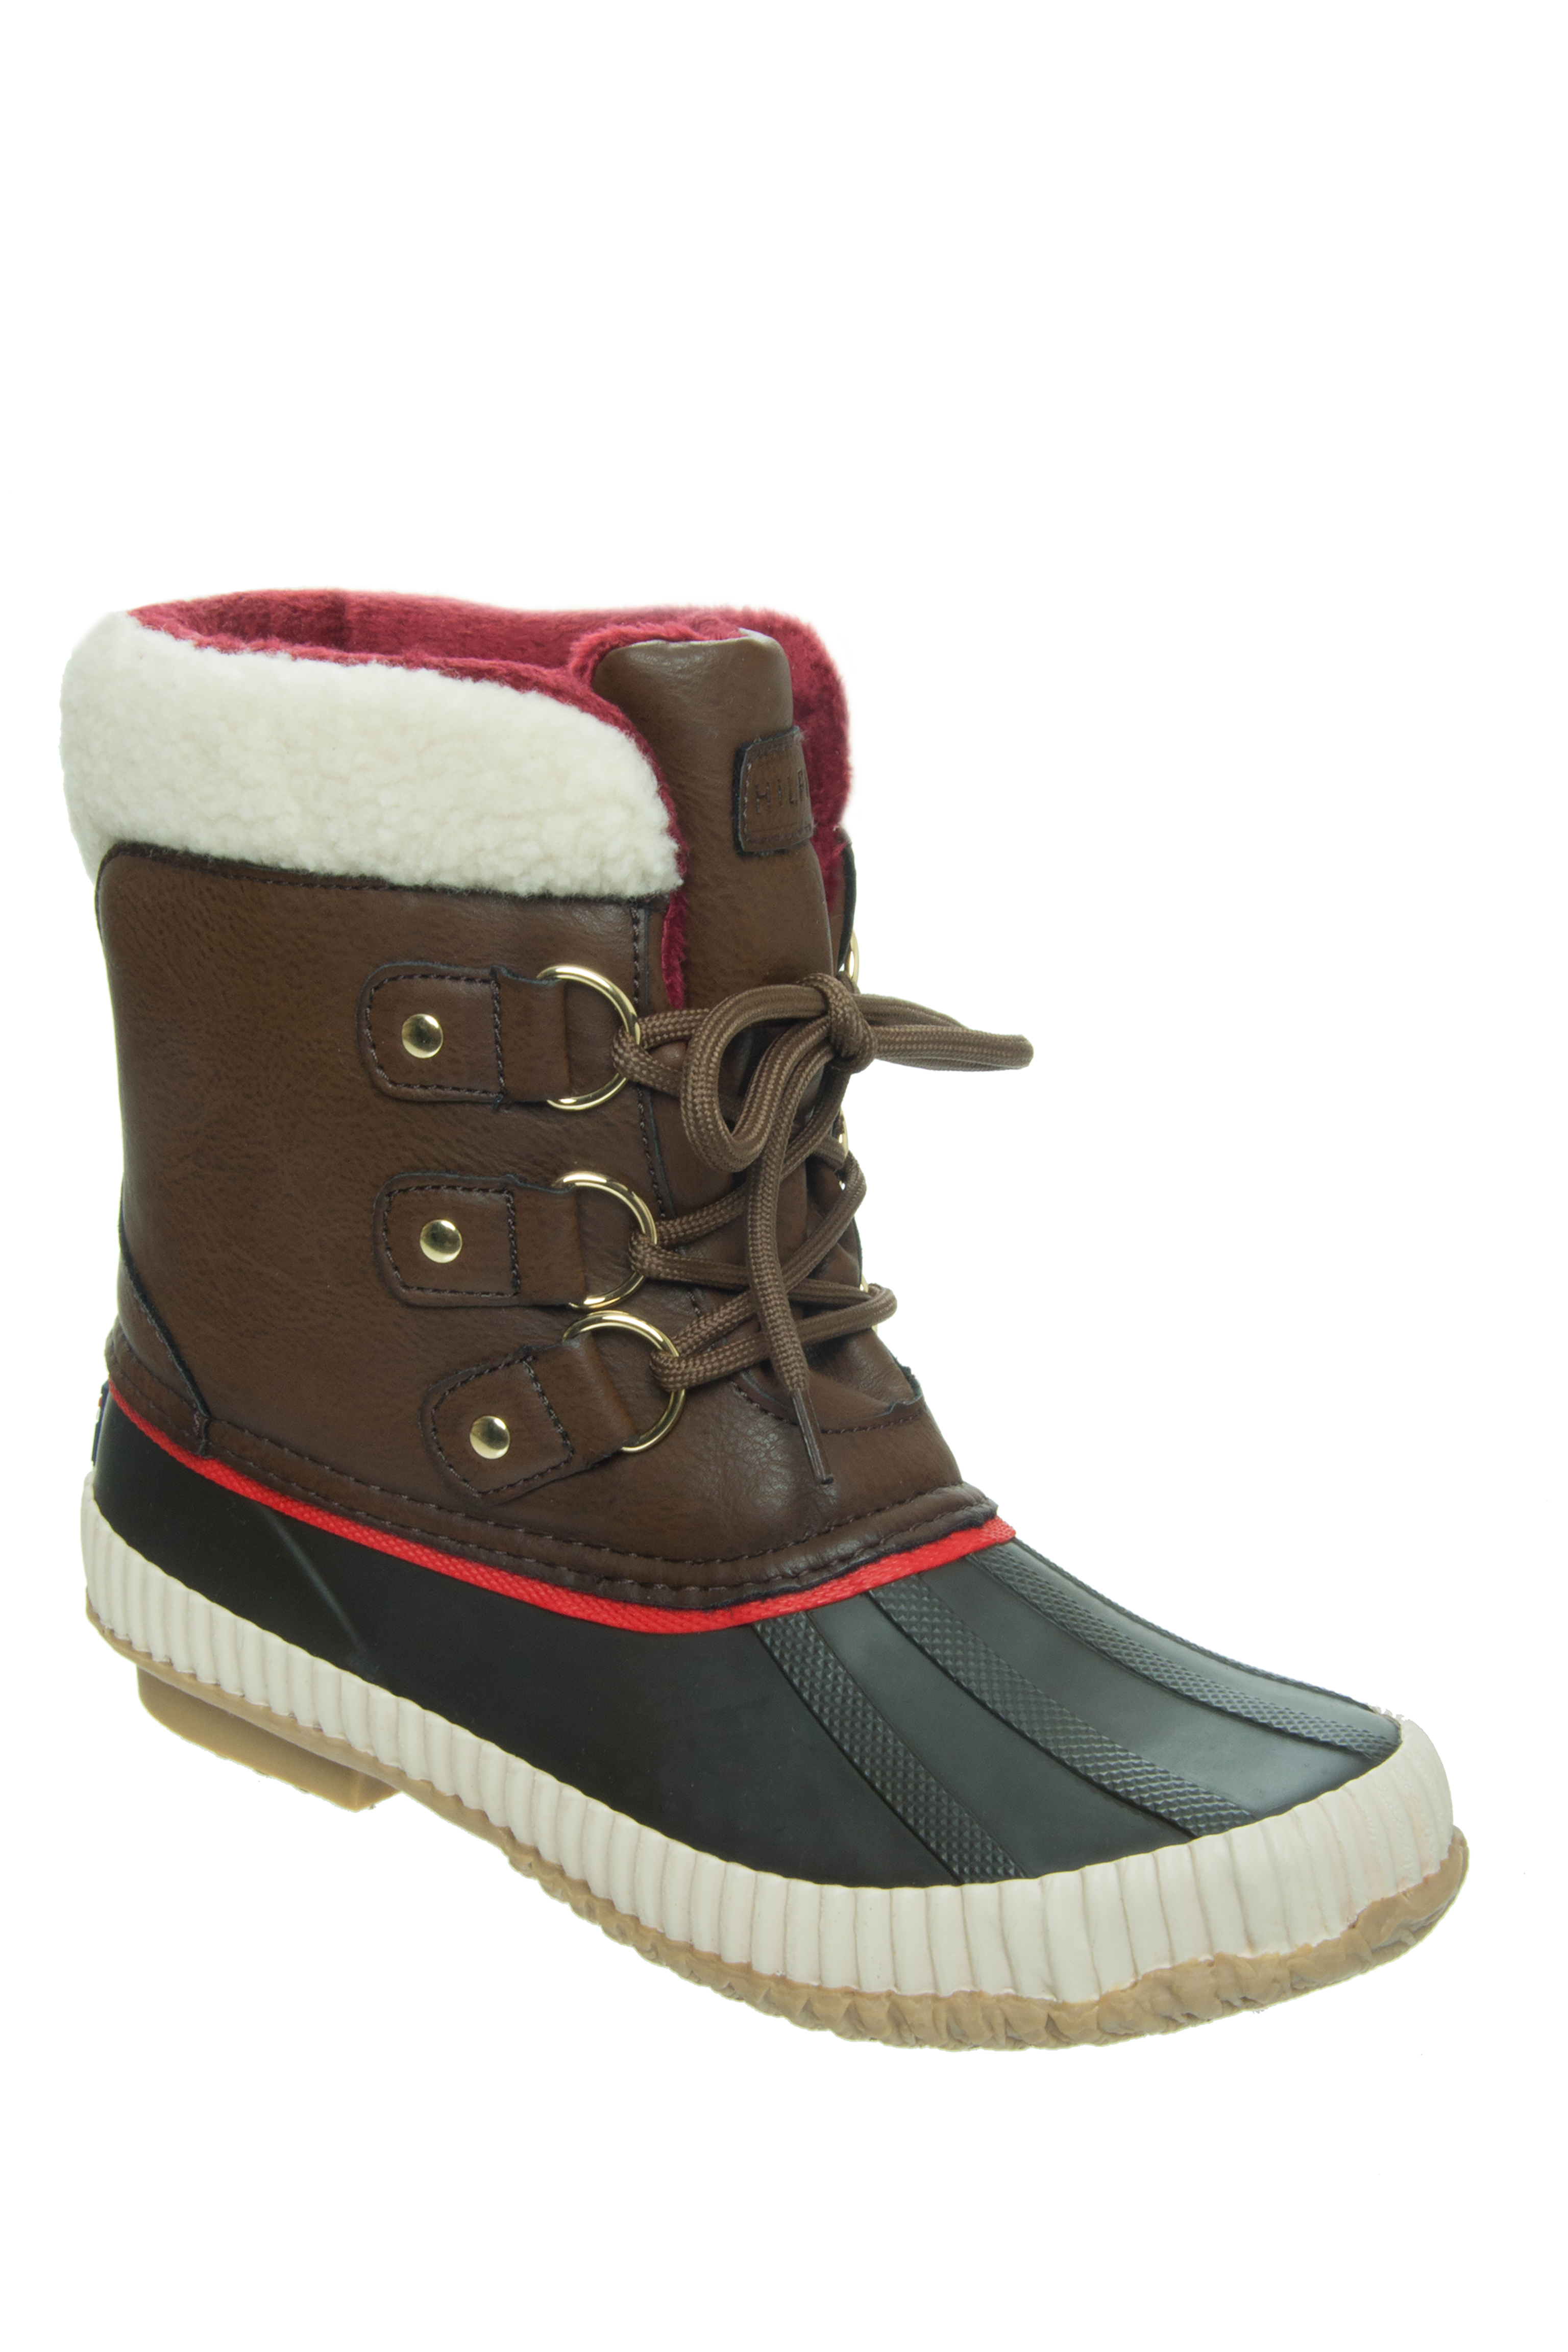 Tommy Hilfiger Ebonie Low Heel Duck Snow Boots - Brown